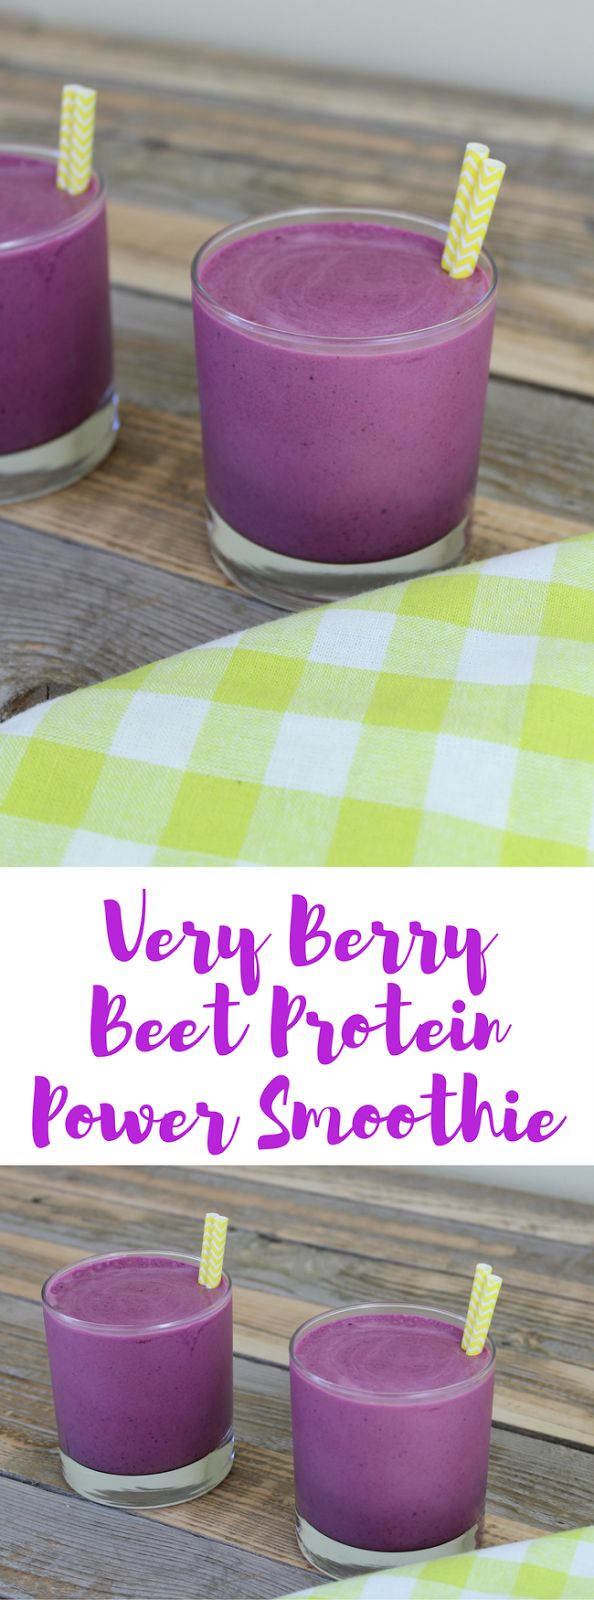 Very Berry Beet Protein Power Smoothie. I'm a little obsessed with beets lately, but beets are really good for you! Beets contain Vitamin C and folate as well as many minerals our bodies need. Plus, they have fiber and a cup of beets only has around 60 calories. WIN.  This gluten-free superfood smoothie is chocked full of good for you things like protein, berries, and beets. It's good for you and yes, it's delicious. Trust me, if you're on the beet fence, TRY IT!